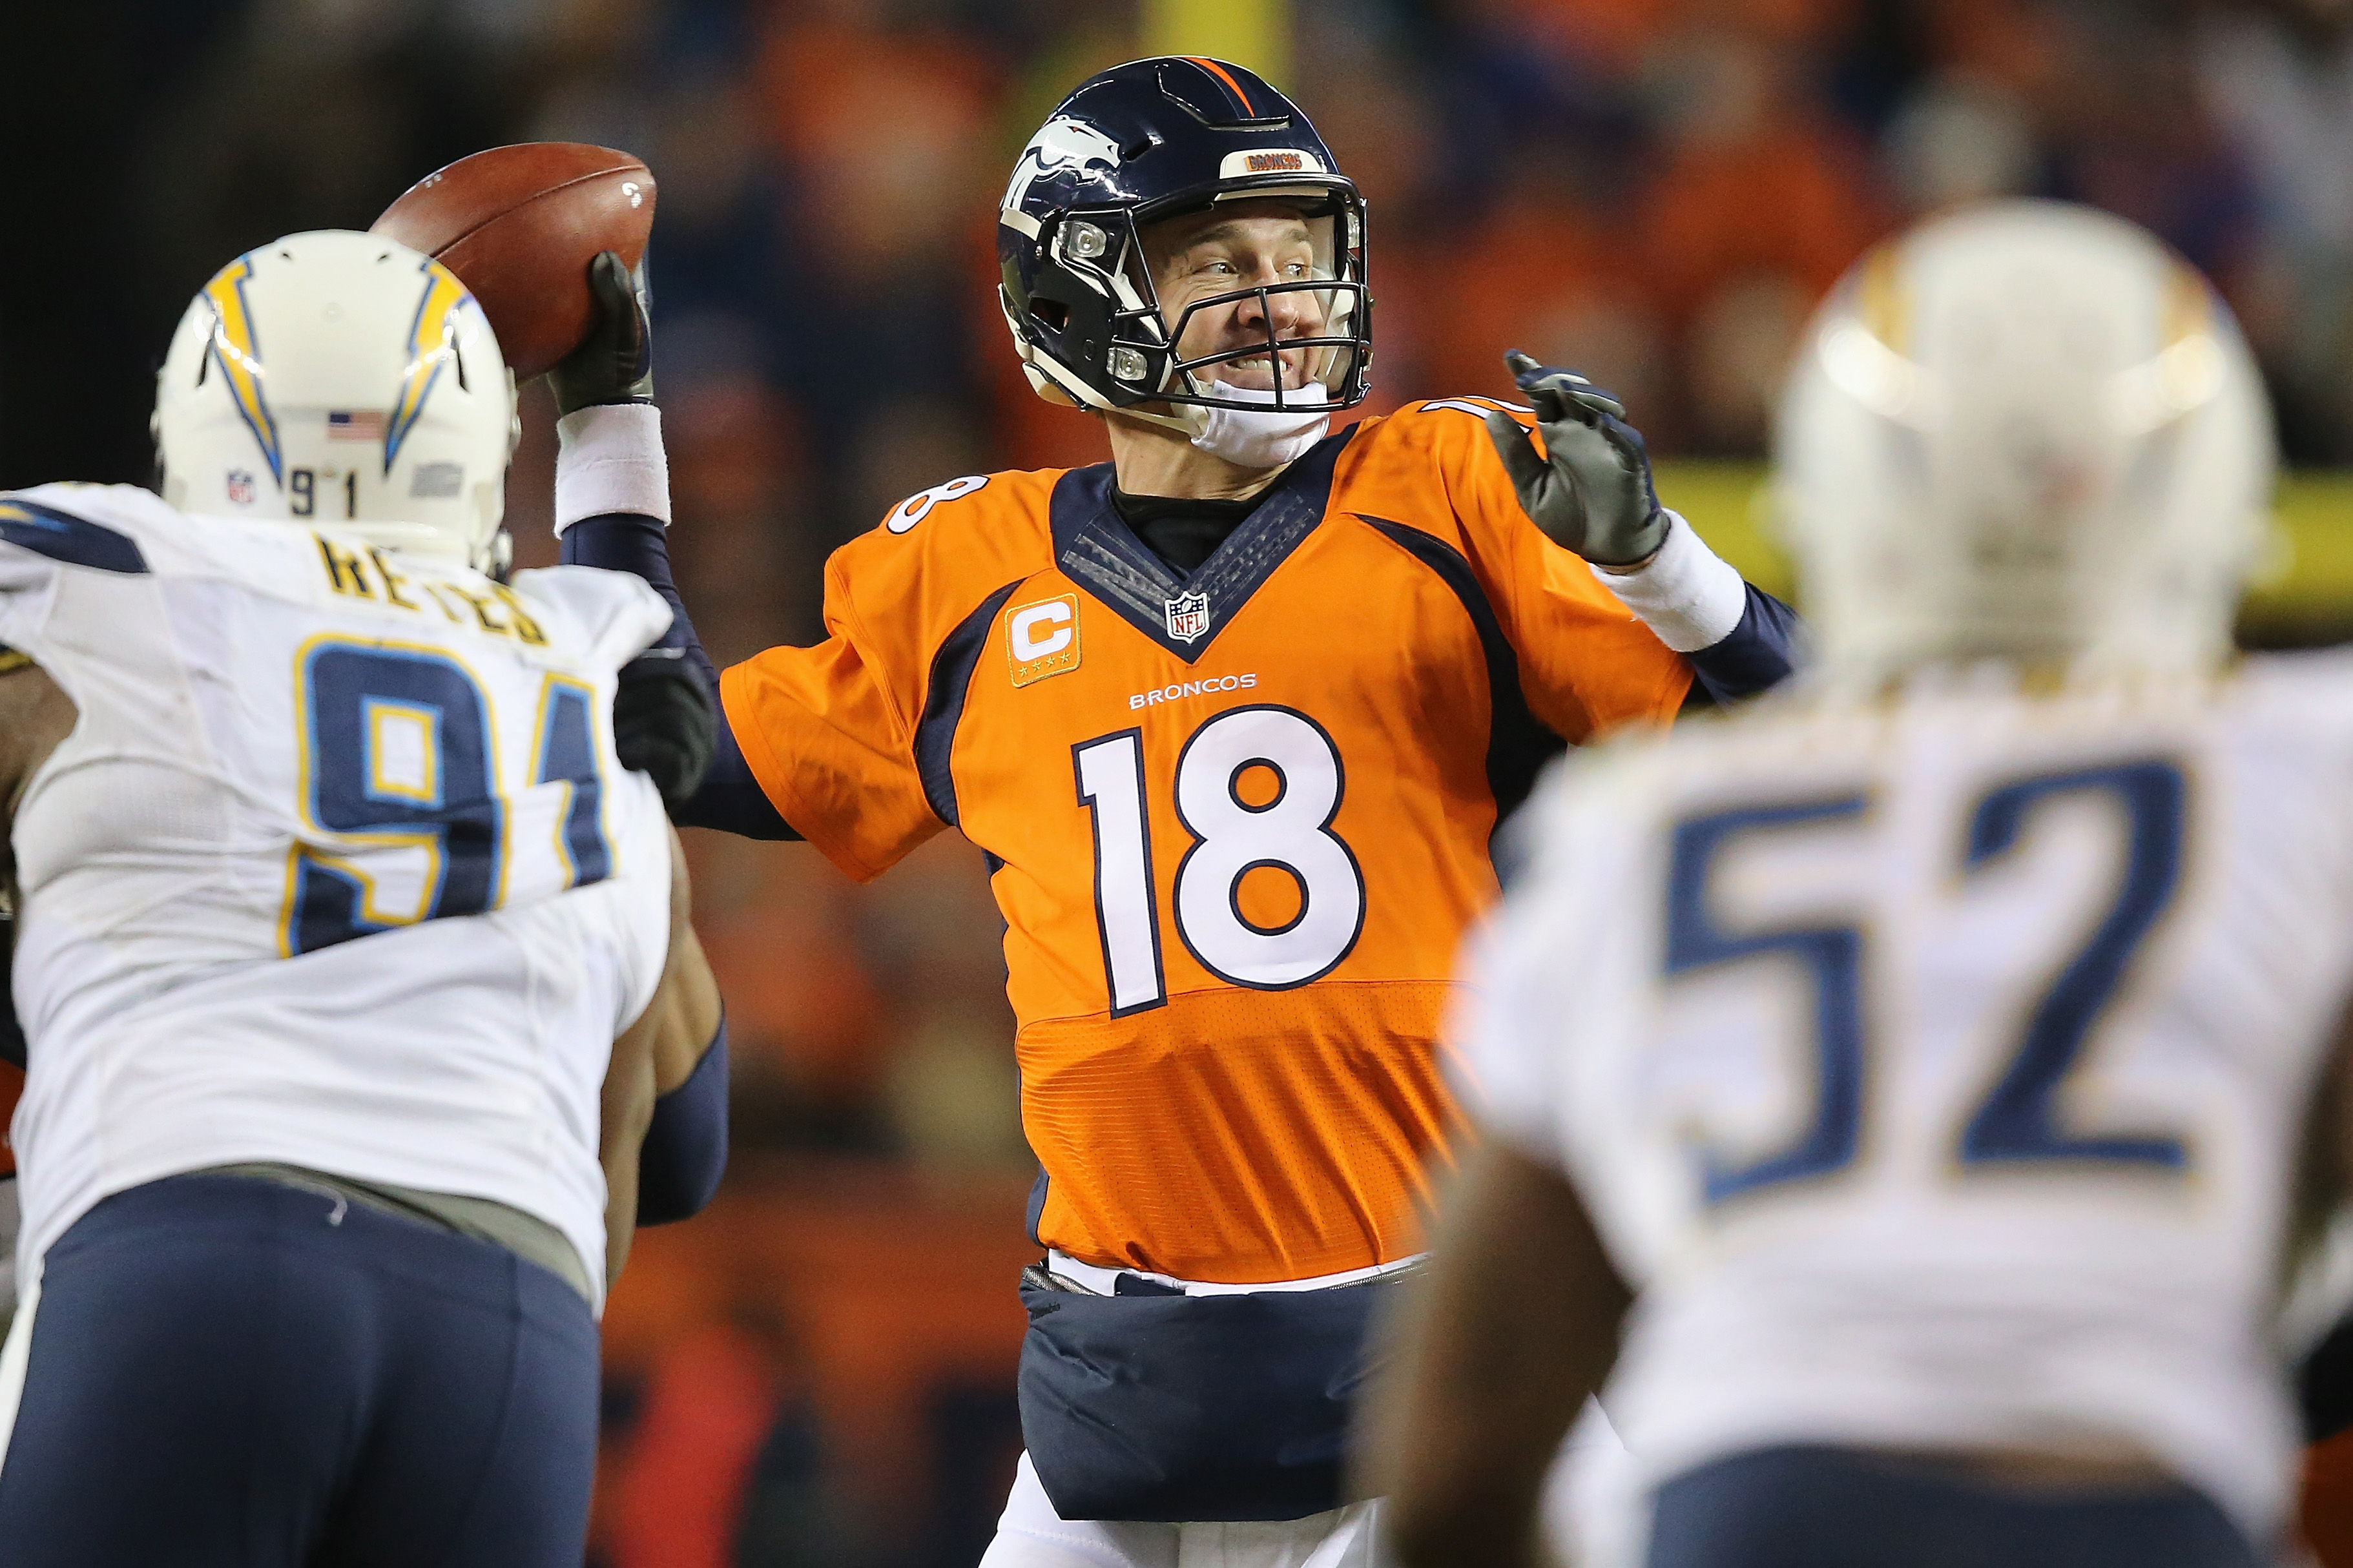 Quarterback Peyton Manning #18 of the Denver Broncos passes against the San Diego Chargers during a game at Sports Authority Field at Mile High on Jan. 3, 2016. (Photo by Sean M. Haffey/Getty Images)